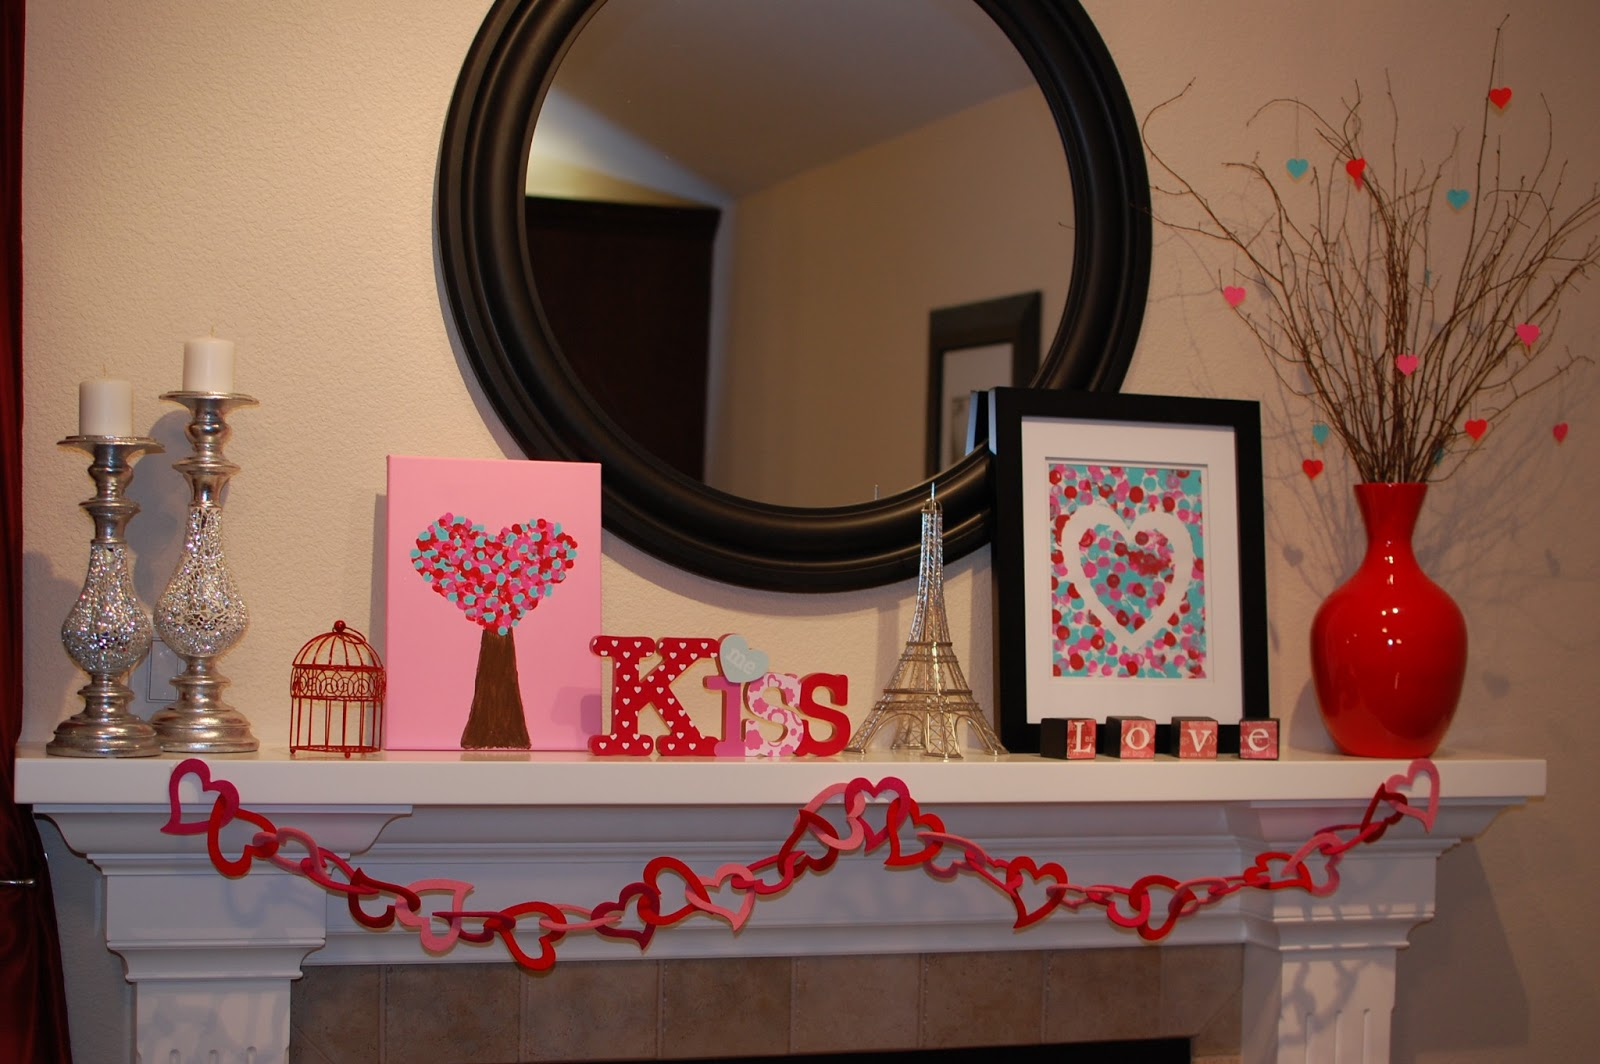 decorate valentines valentine decorations to office decor s ideas bedroom day